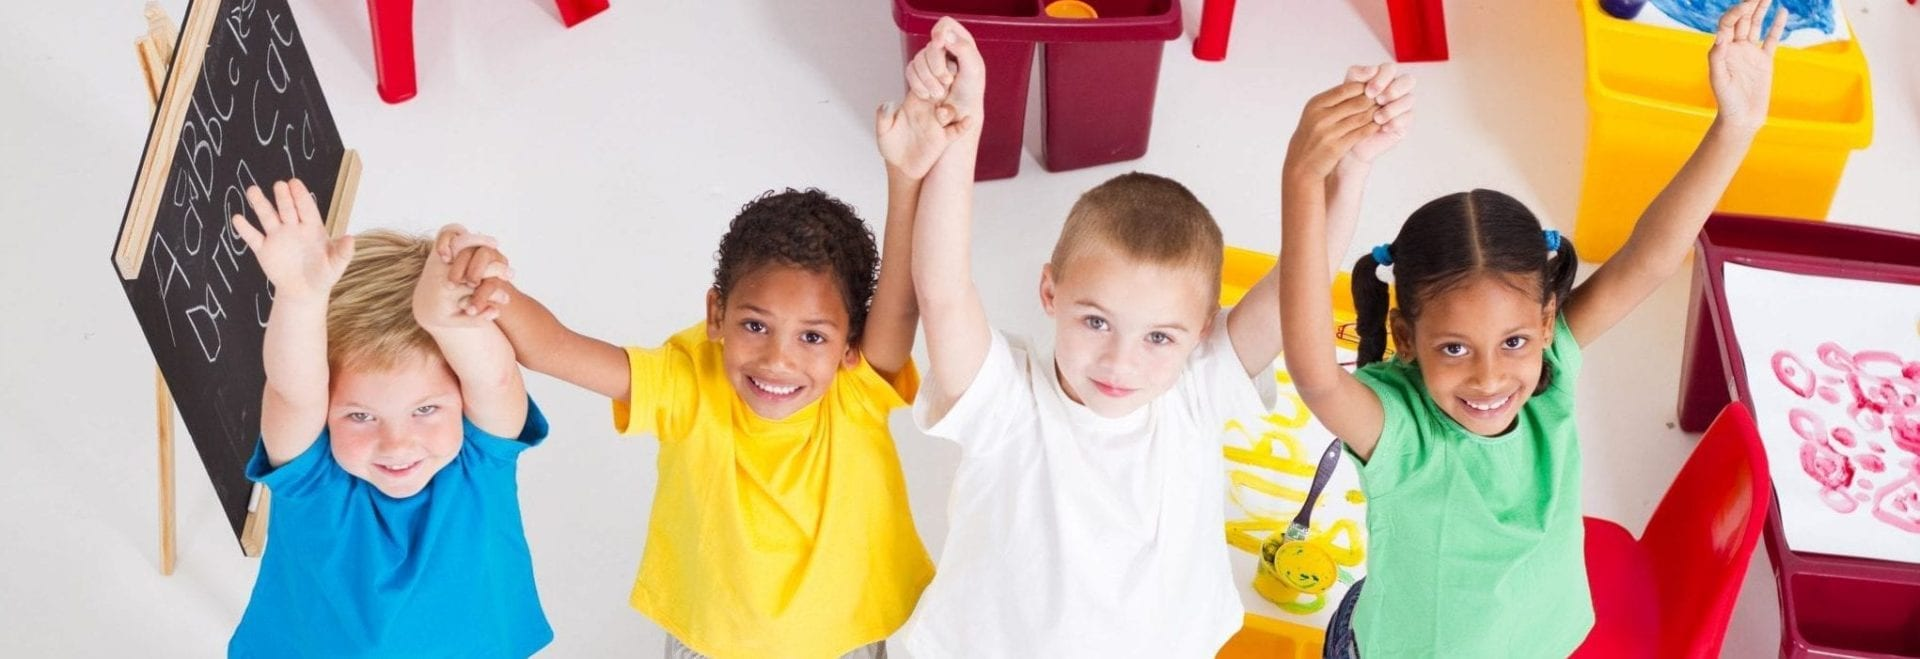 4 young children smiling with hands up